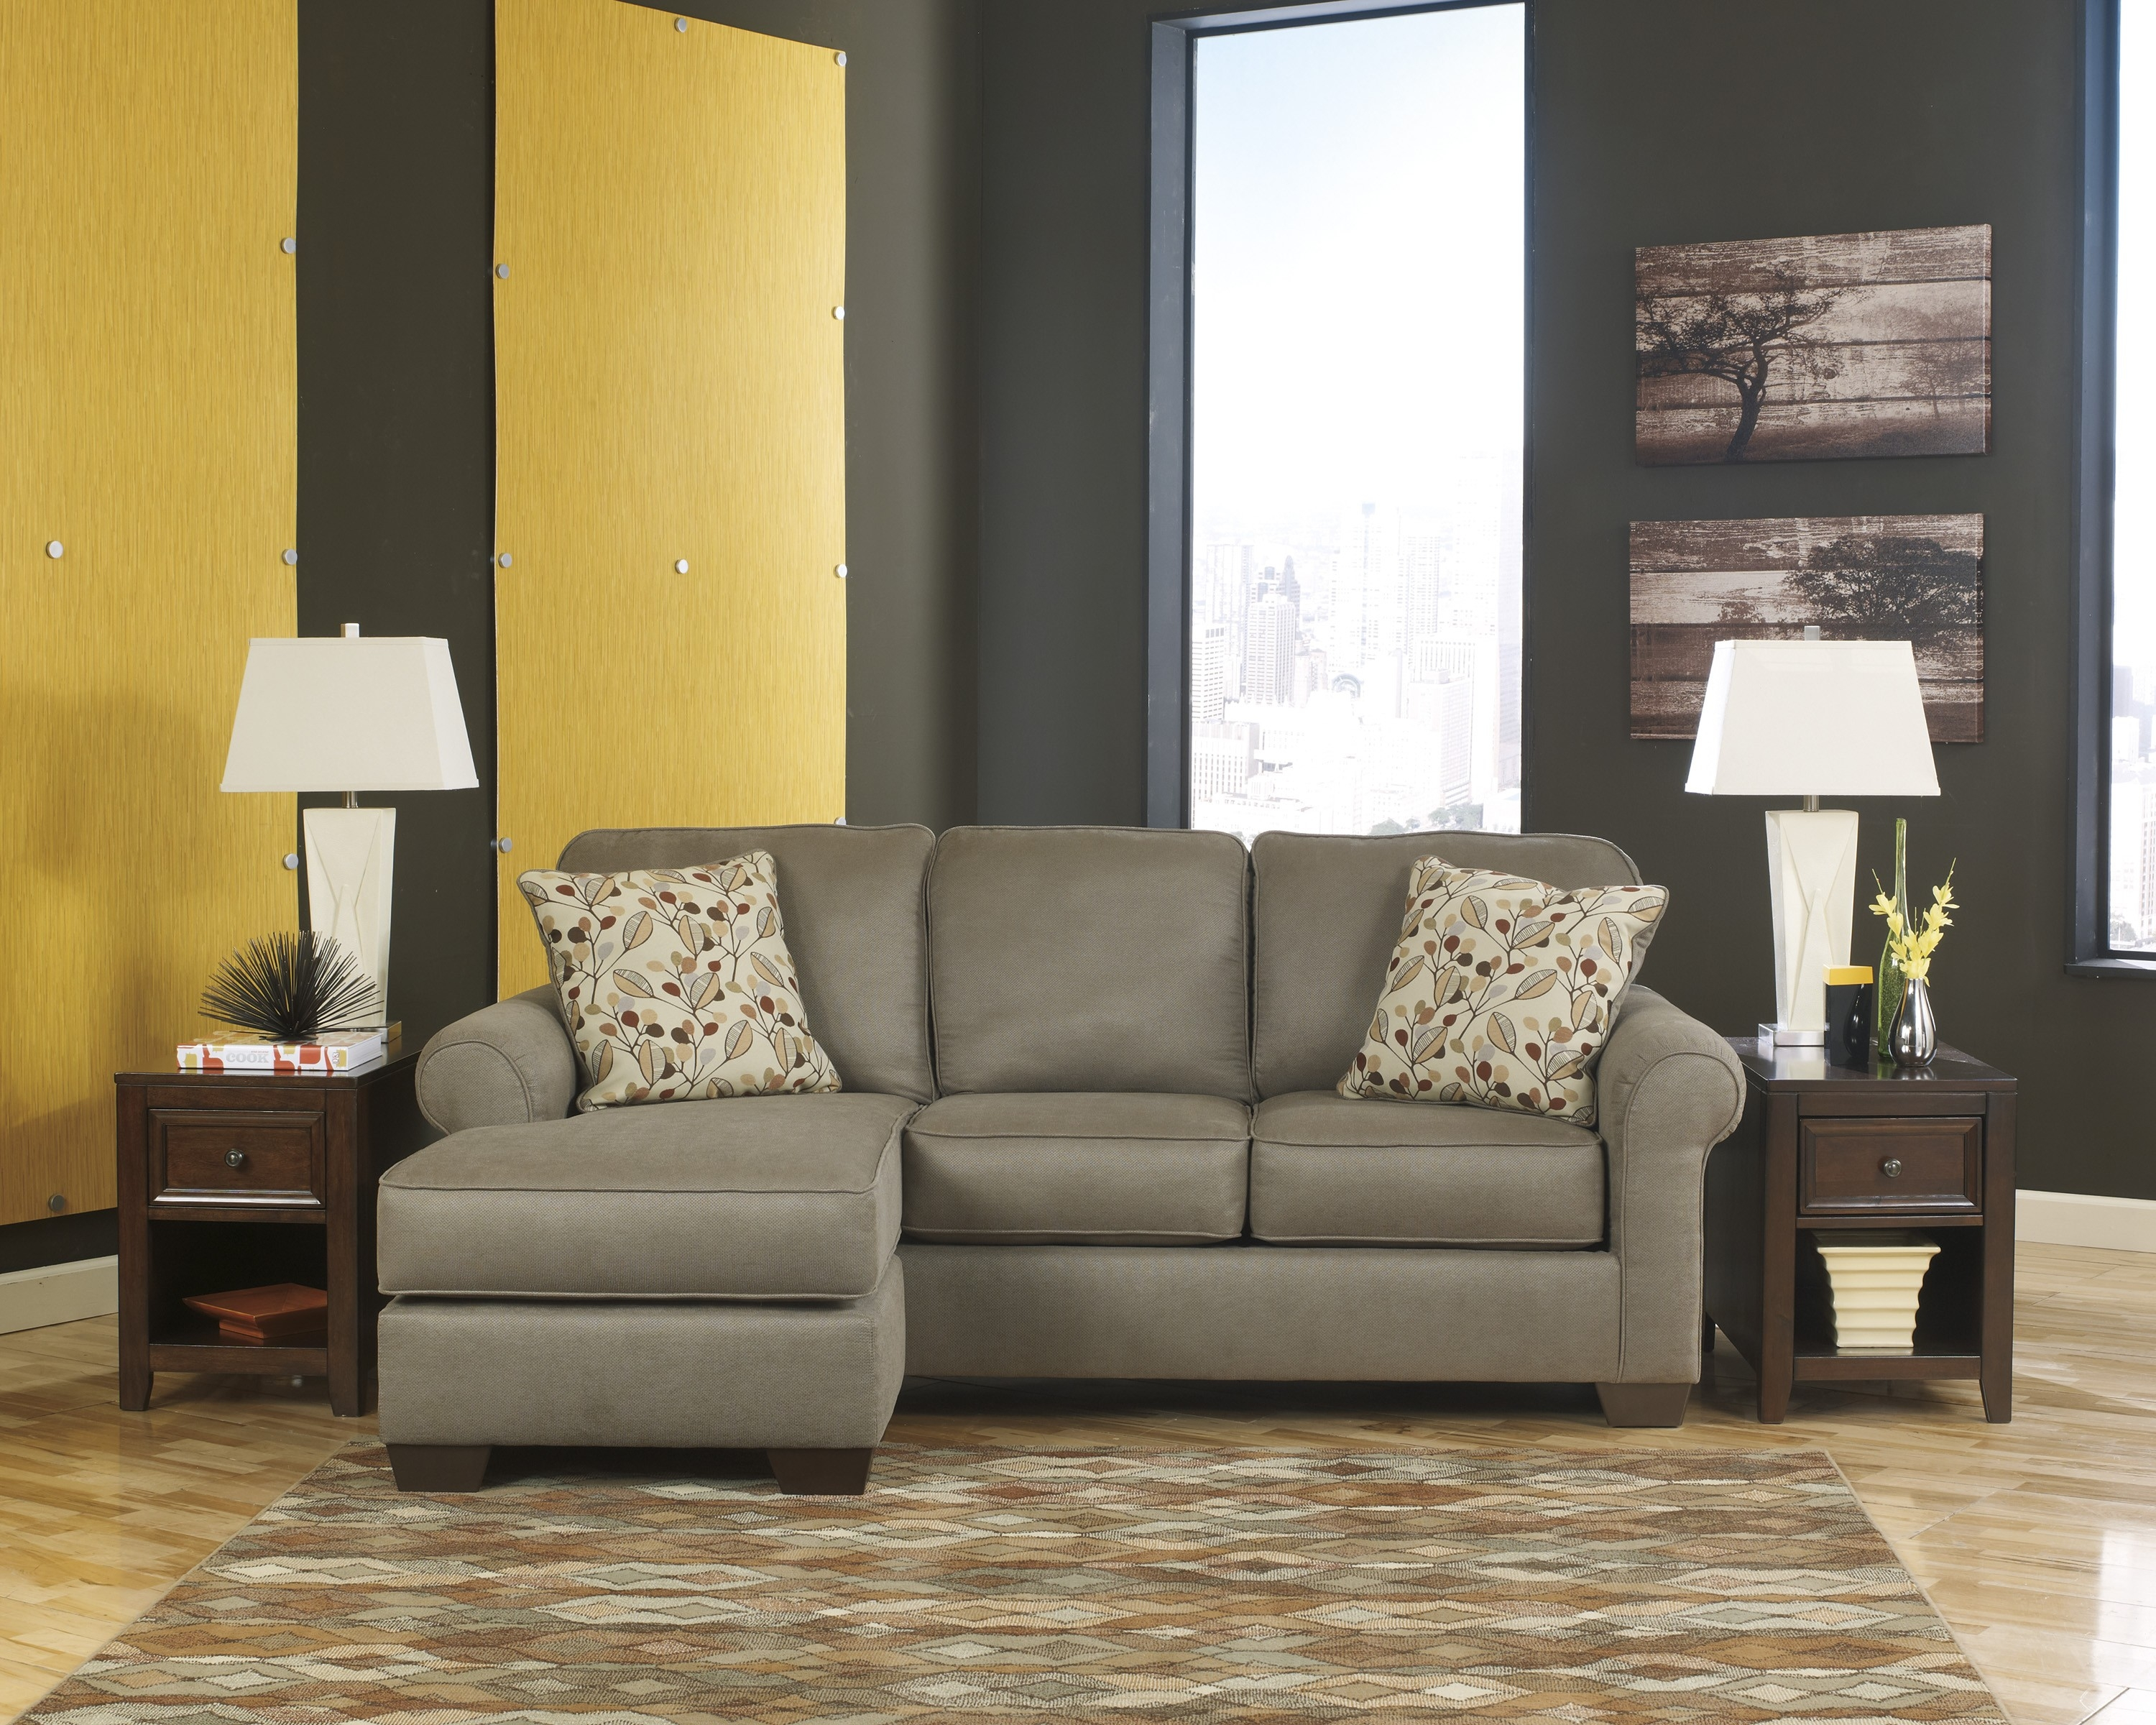 Decor Fascinating Benchcraft Sofa With Luxury Shapes For Living Regarding Berkline Sectional Sofa (Image 7 of 15)